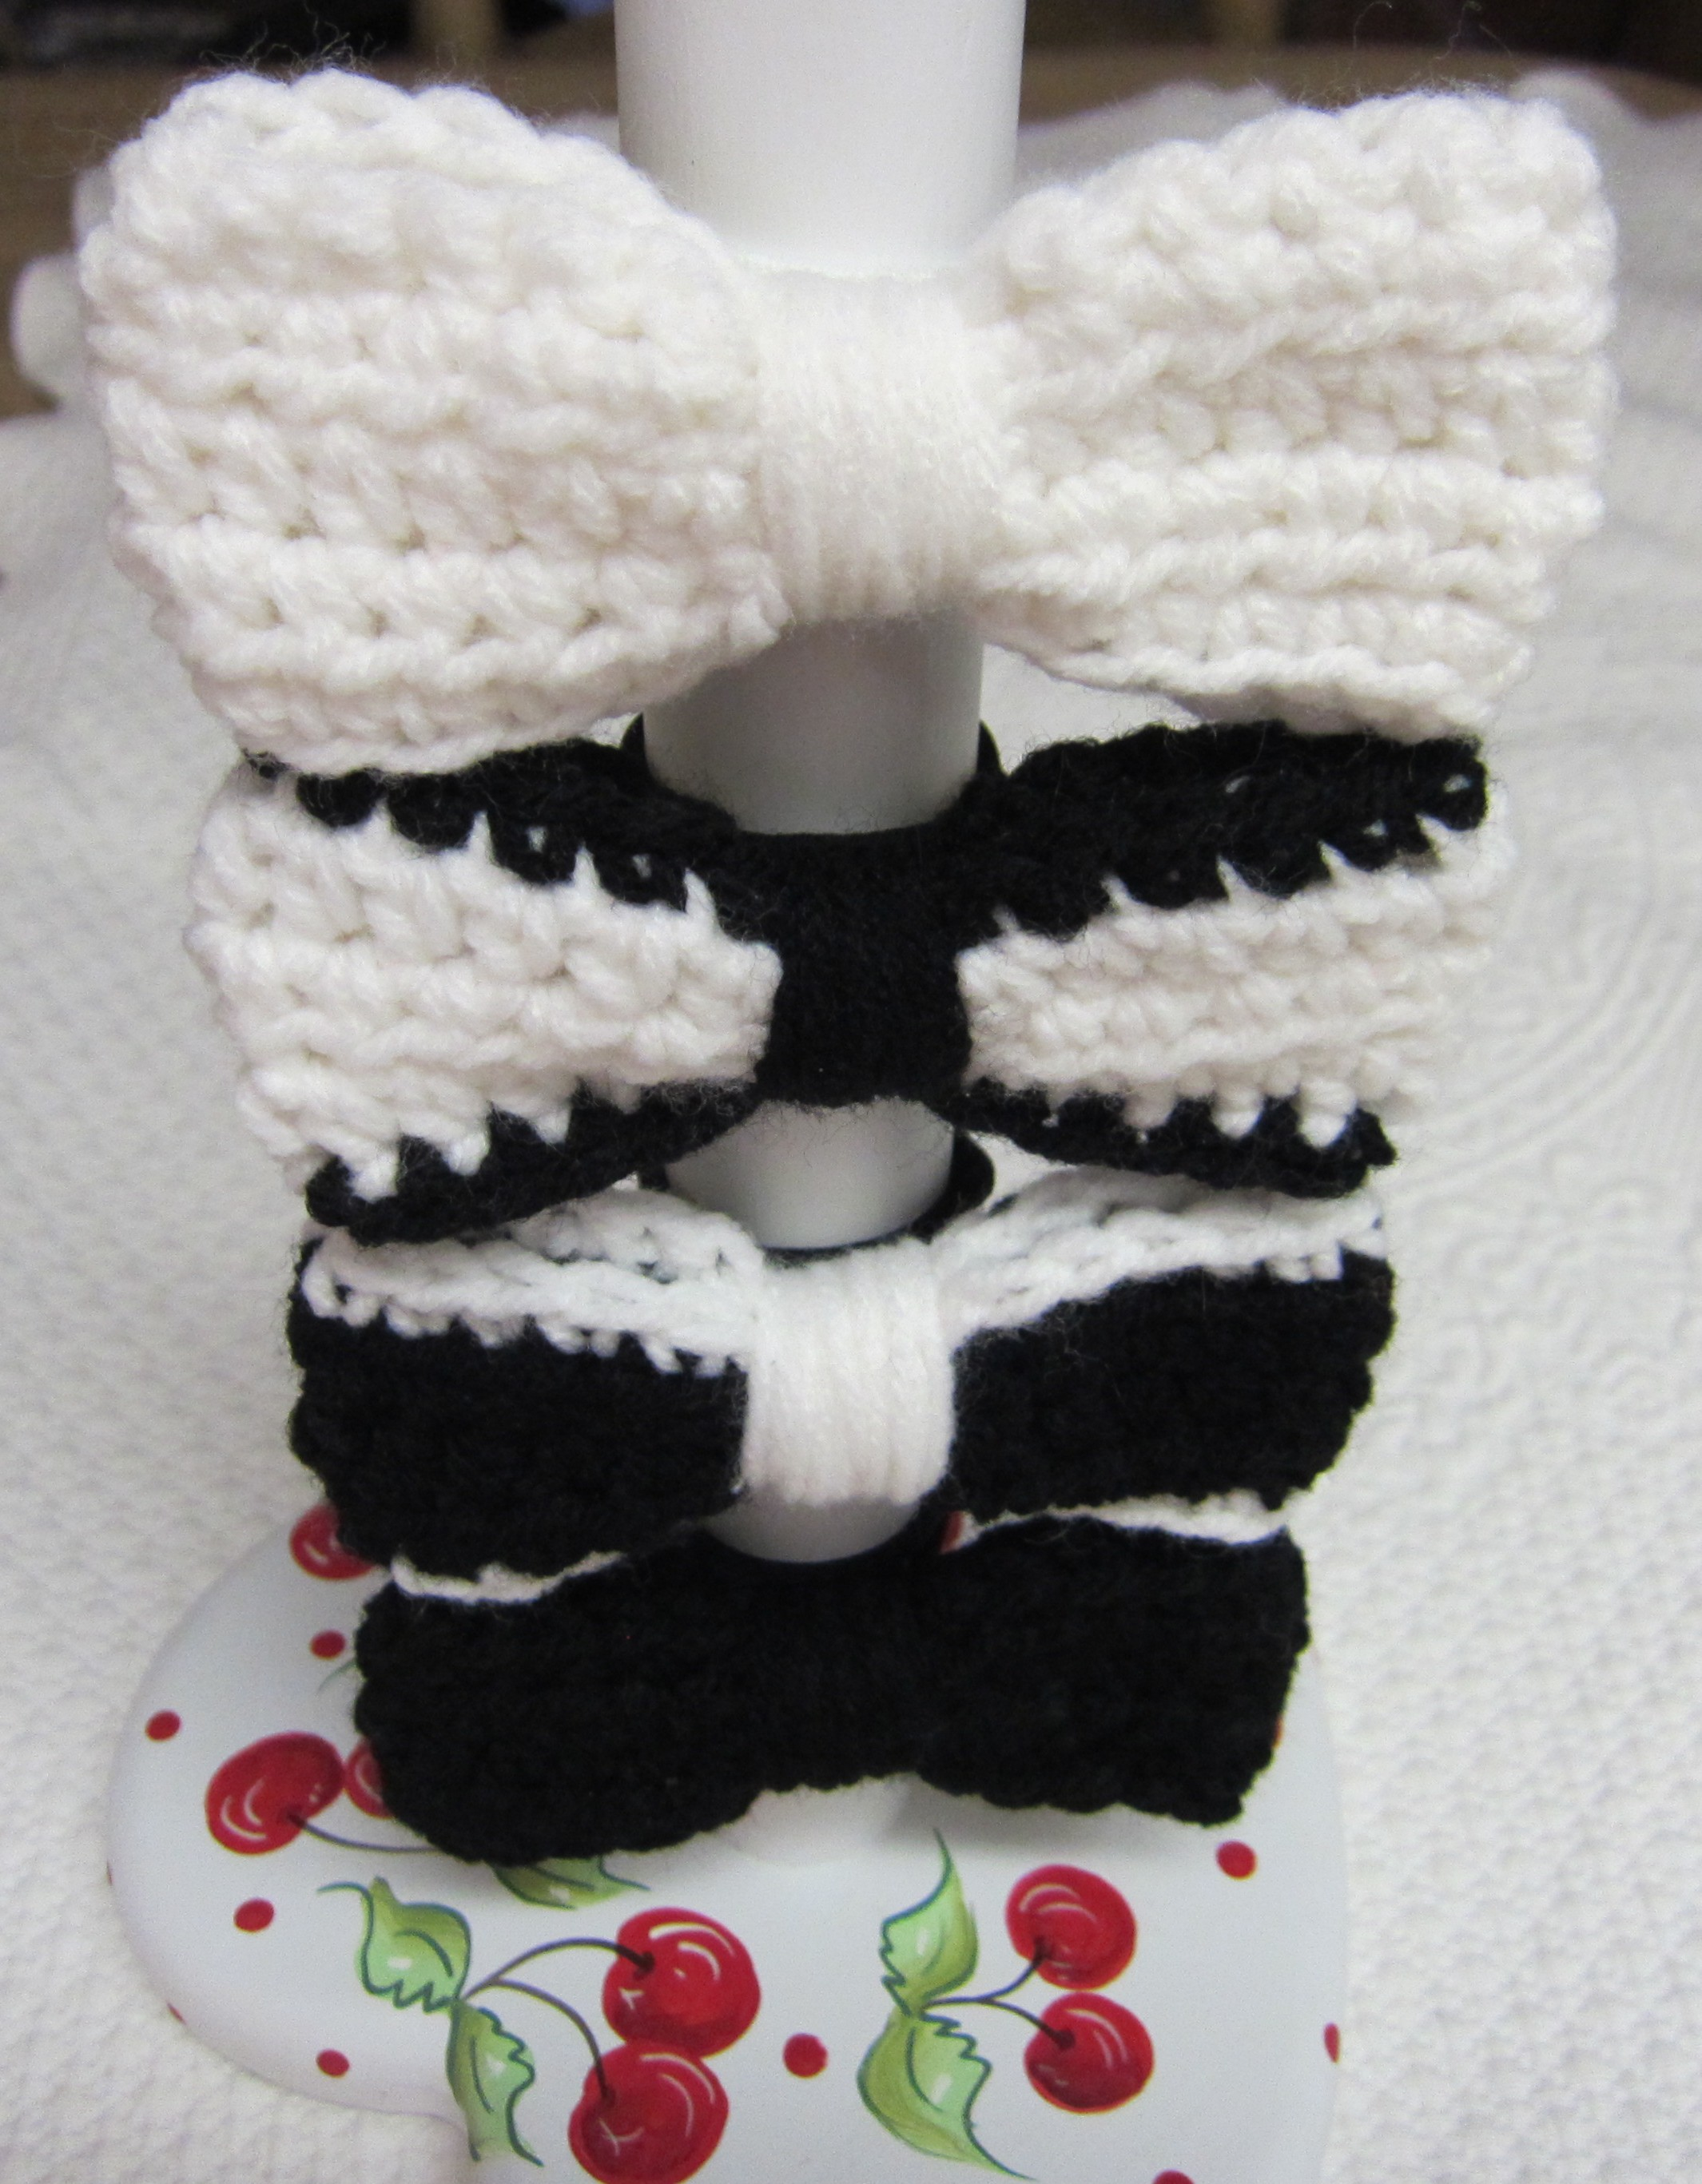 Crochet Hair Ties : Crochet Hair Tie Bows in Various Colors Black,White,Black with White ...